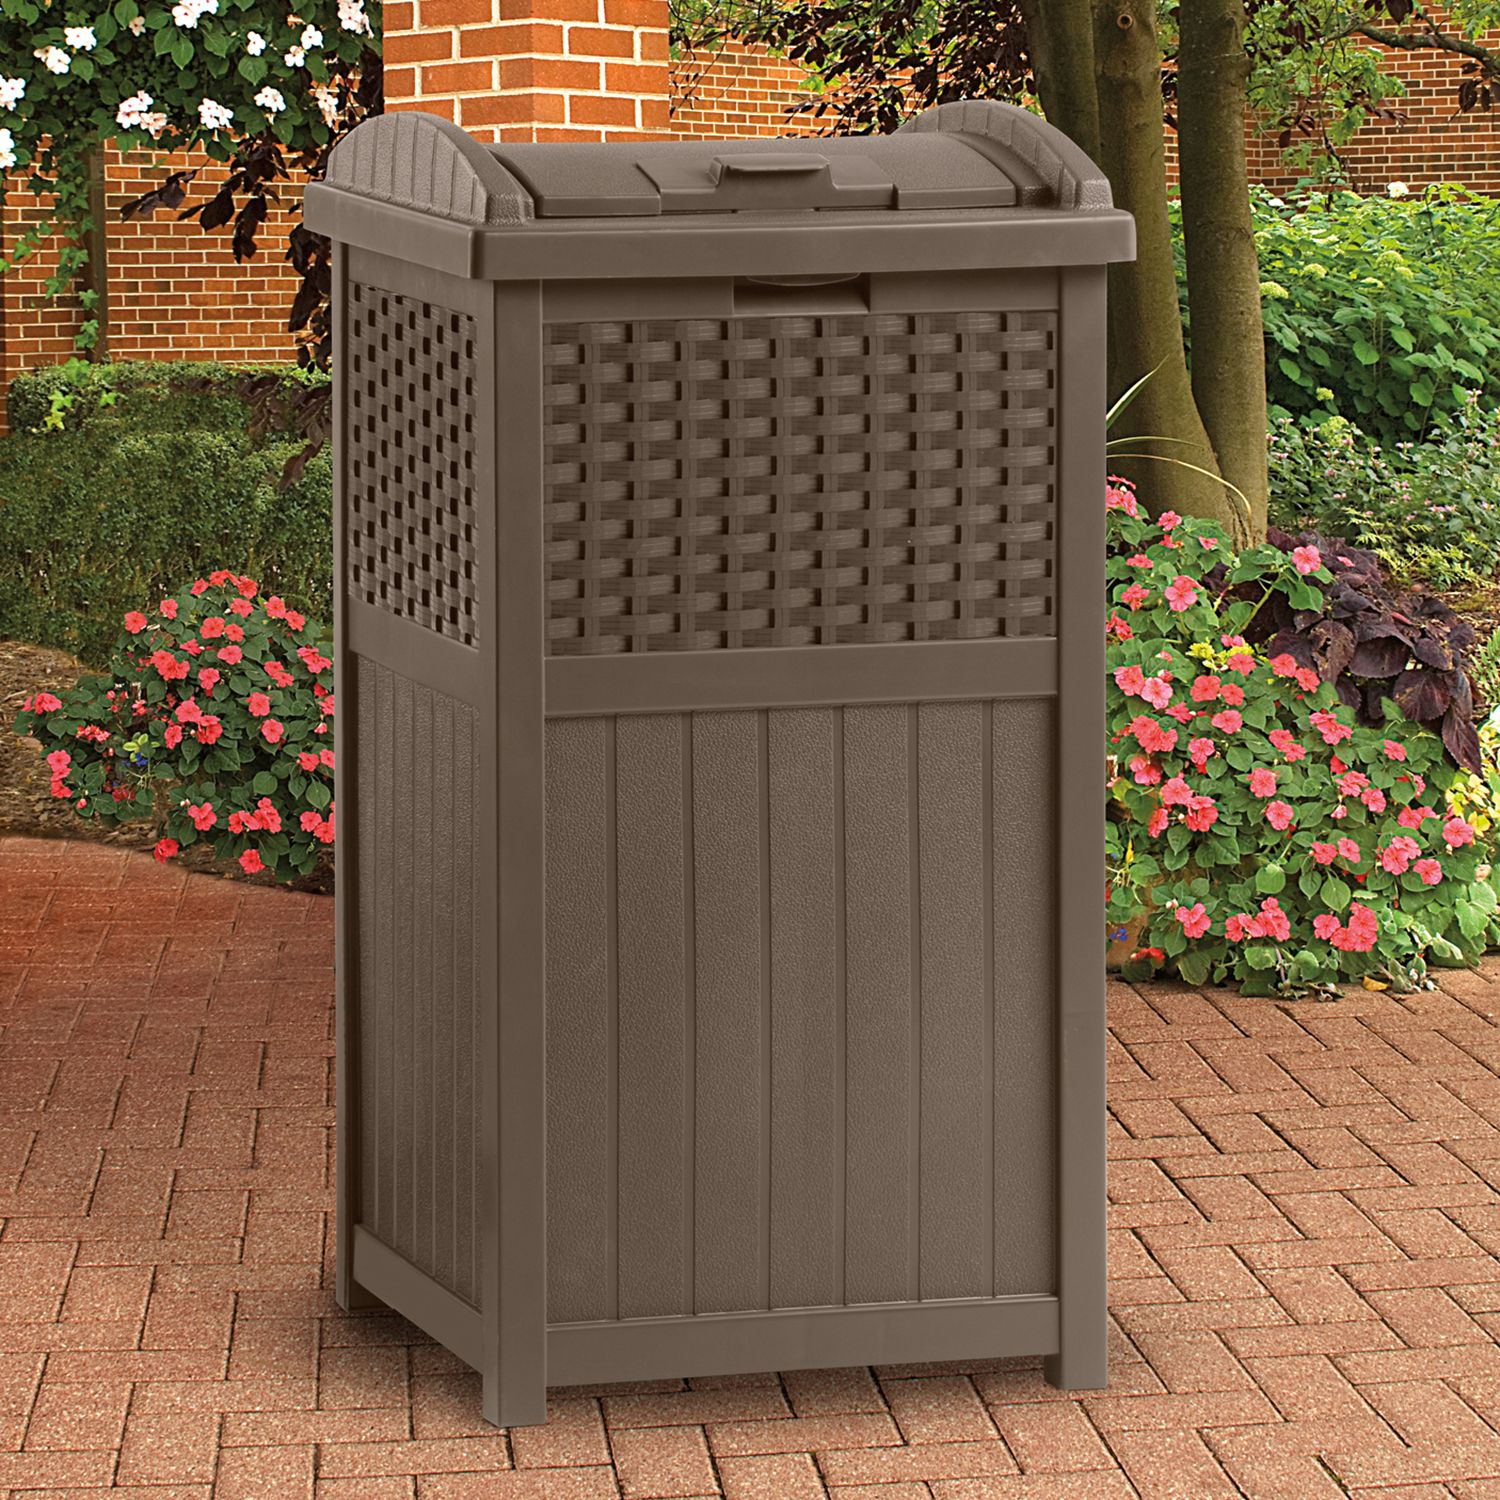 suncast 33gallon trash hideaway outdoor